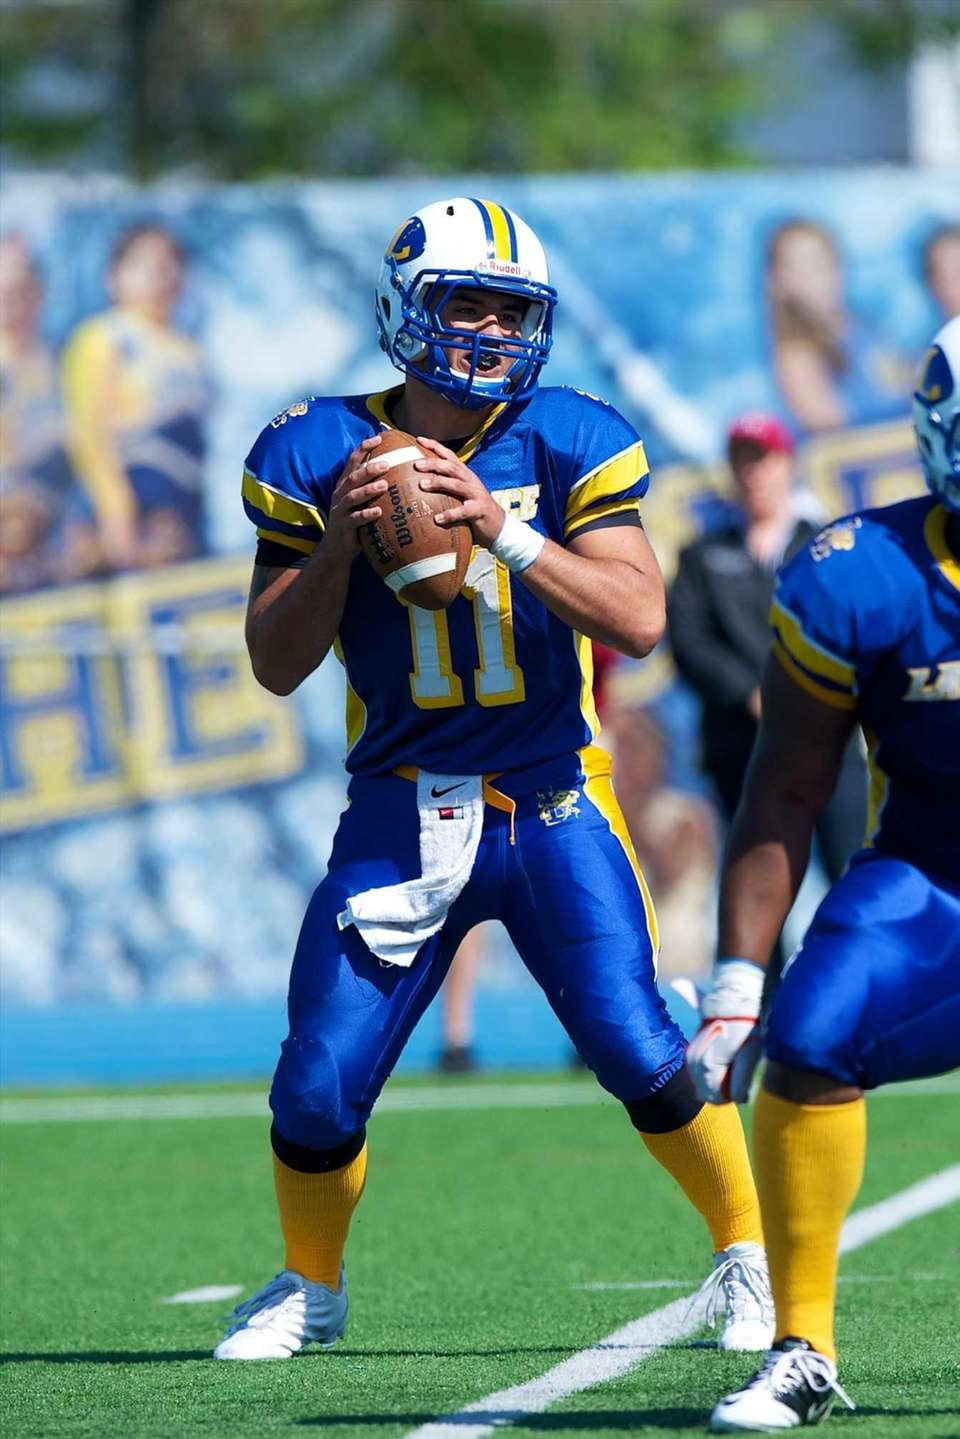 Lawrence quarterback Joe Capobianco looks to pass against